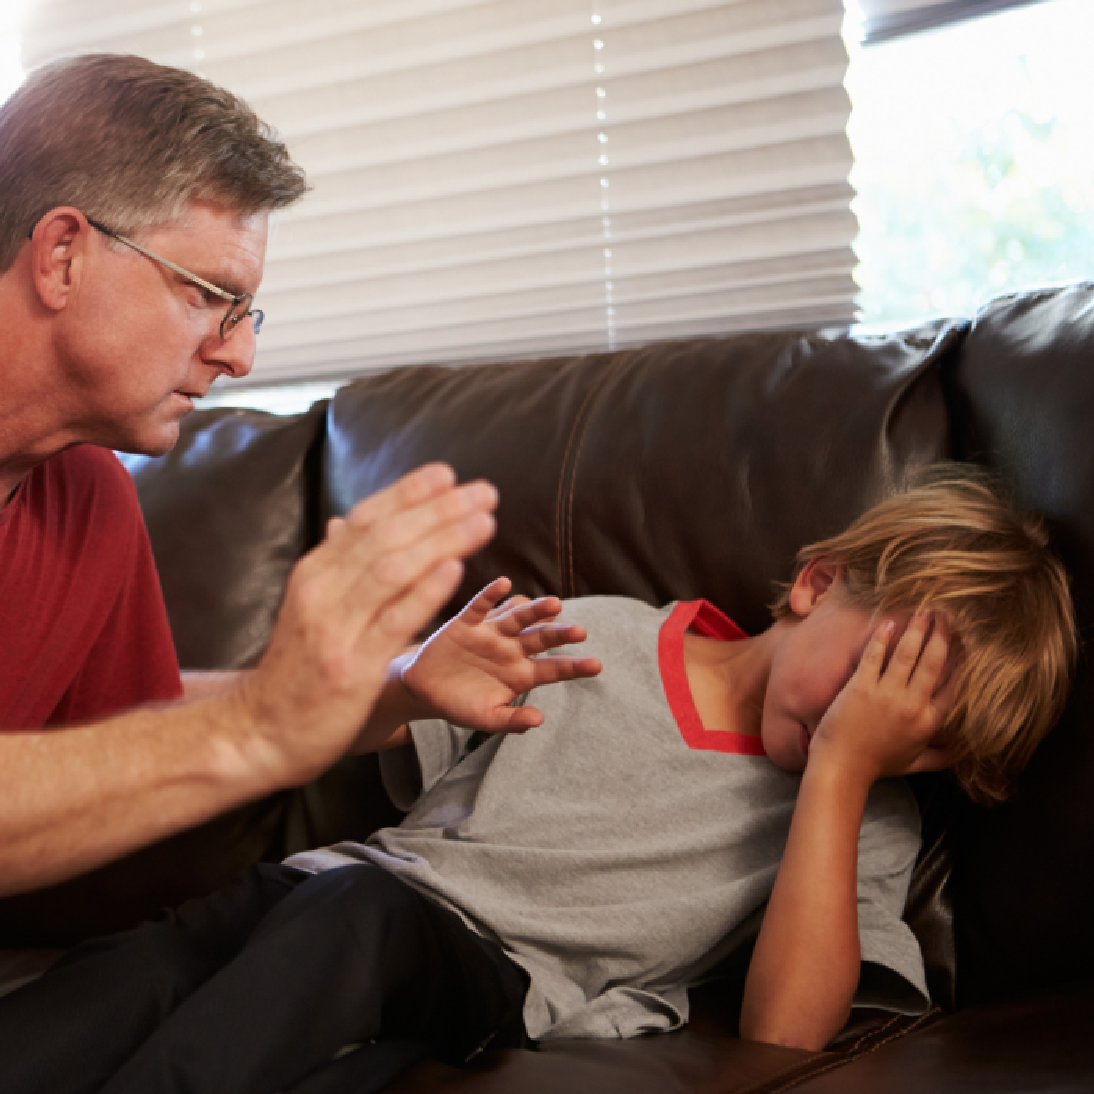 Why is Child Abuse on the Rise?